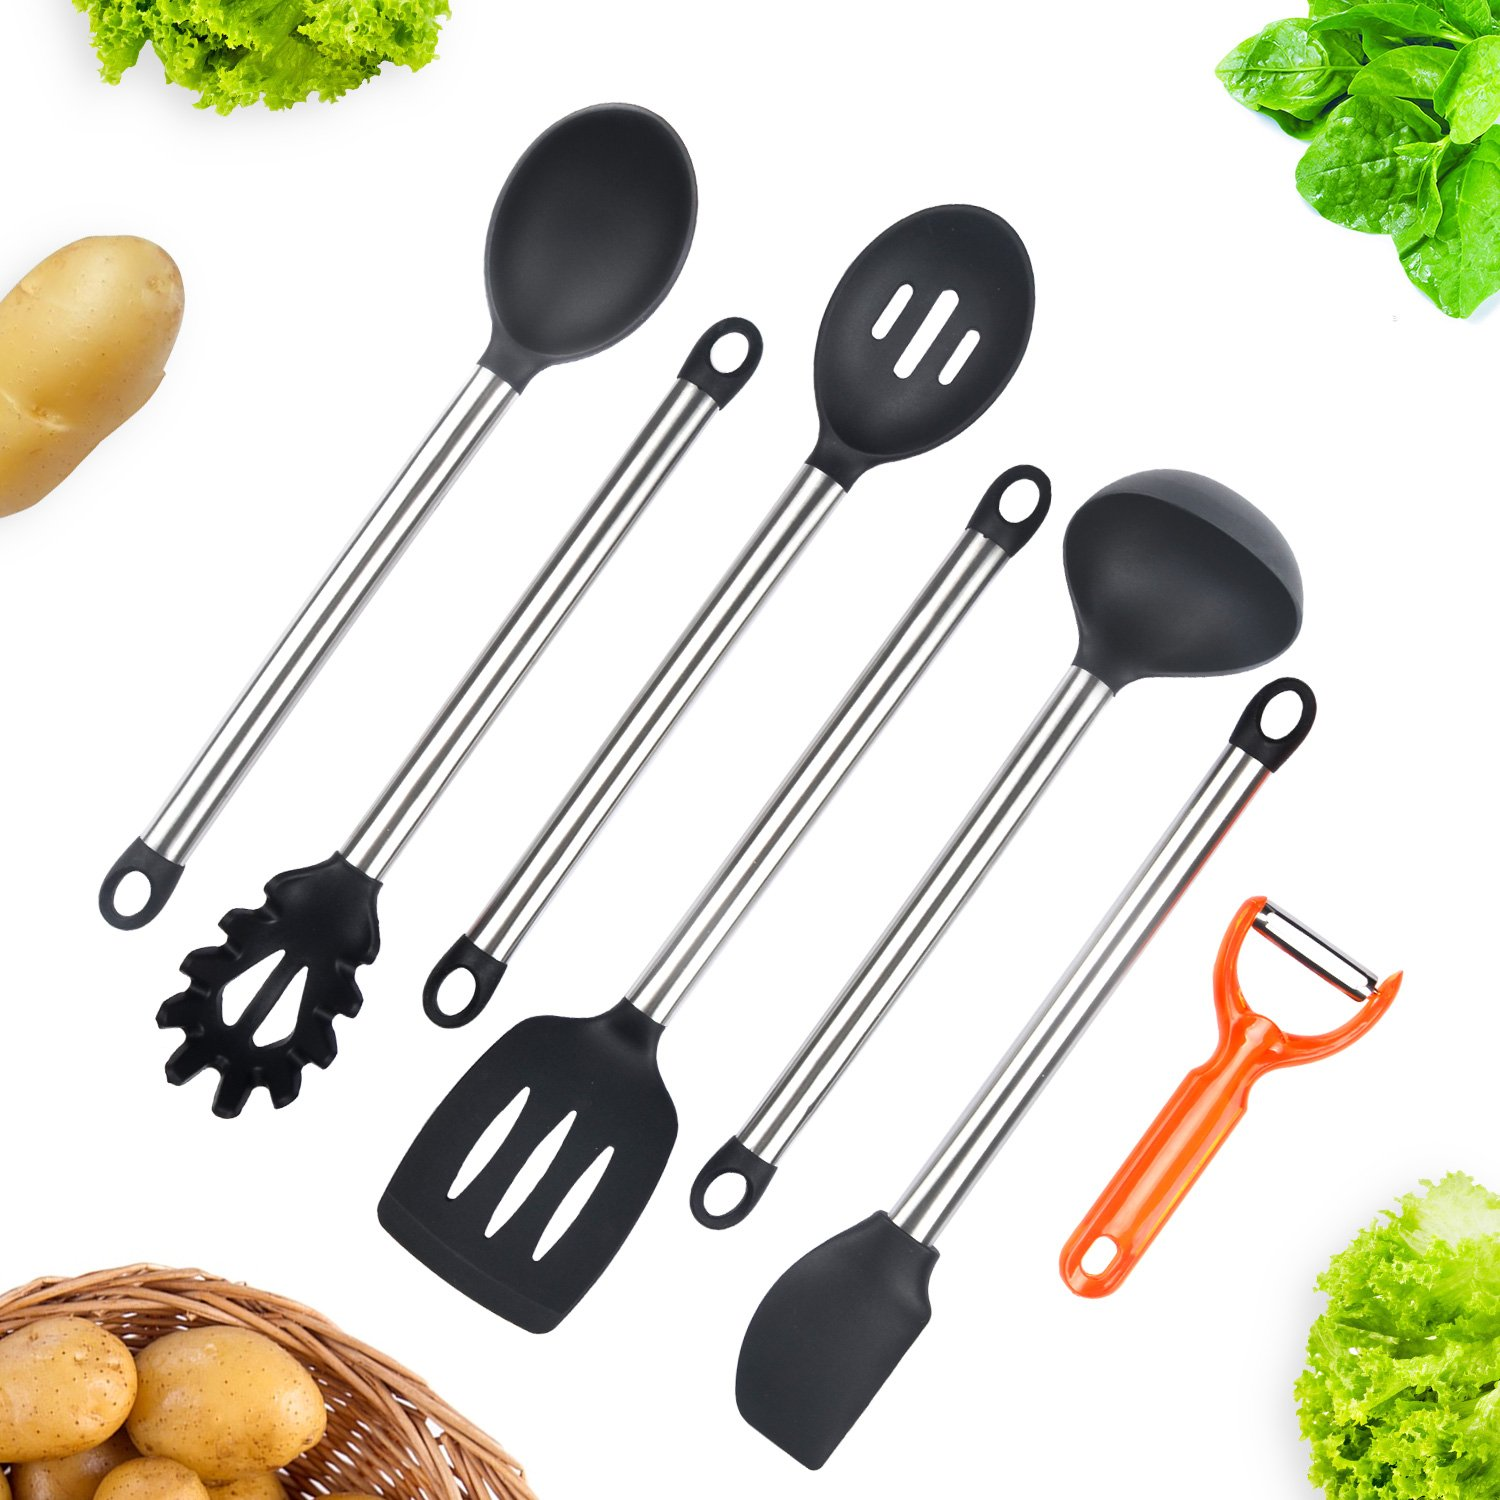 Wik Suang Silicone Kitchen Utensils 6 Pieces Stainless Steel Handle Cooking Utensils Set including Serving Spoon, Deep Ladle, Turner, Sloted Spoon, Spaghetti Server, Spatula, Plus Bonuns Peeler!